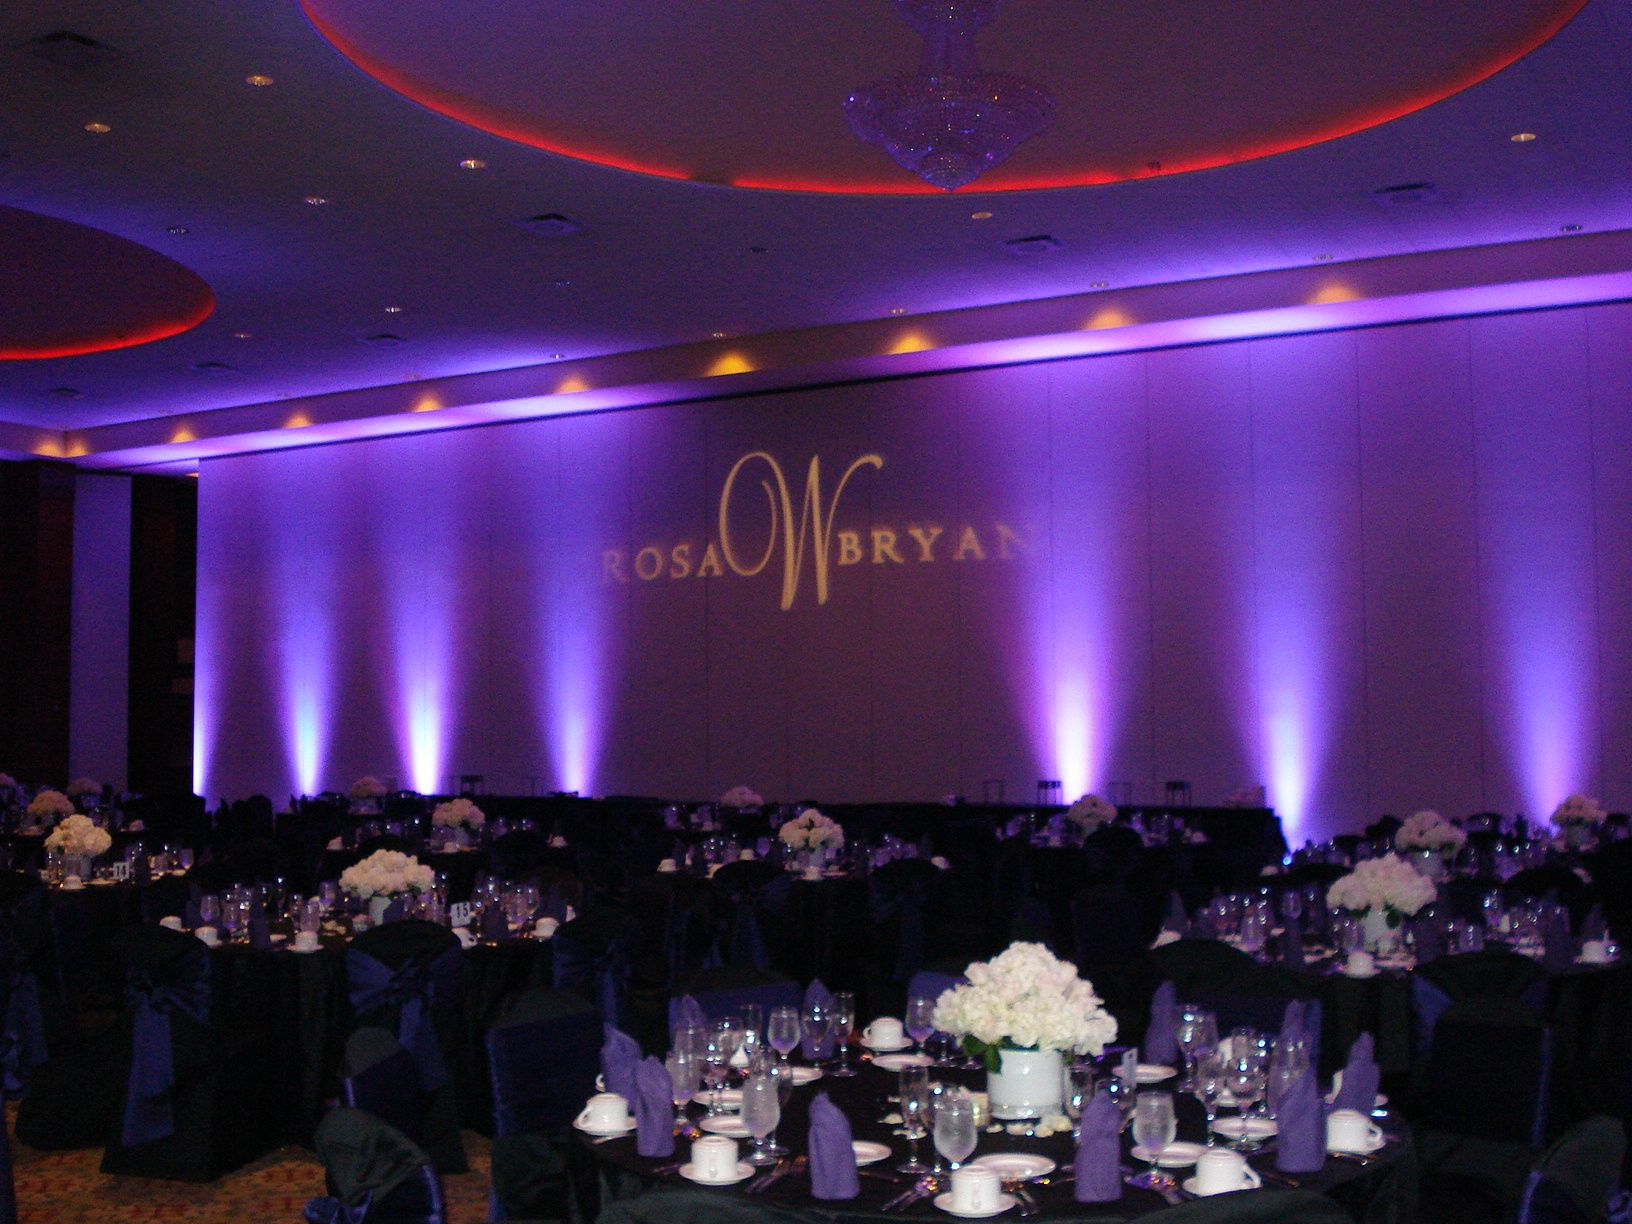 Simple yet elegant lavender theme backdrop with dim lights